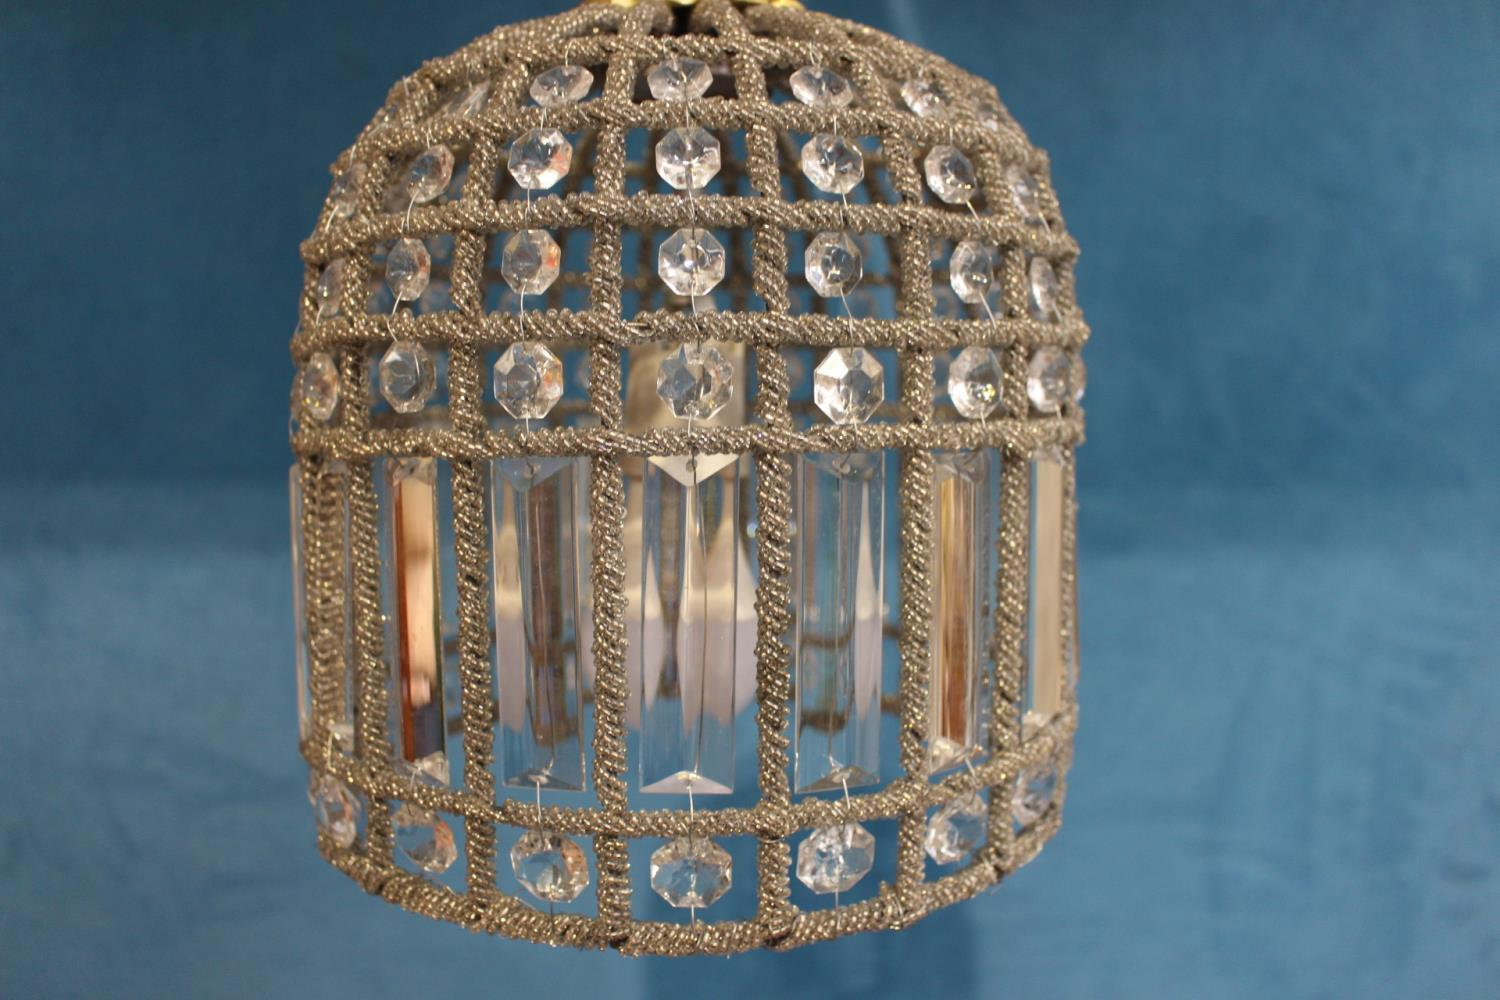 Brass and cut glass hanging ceiling light - Image 2 of 2